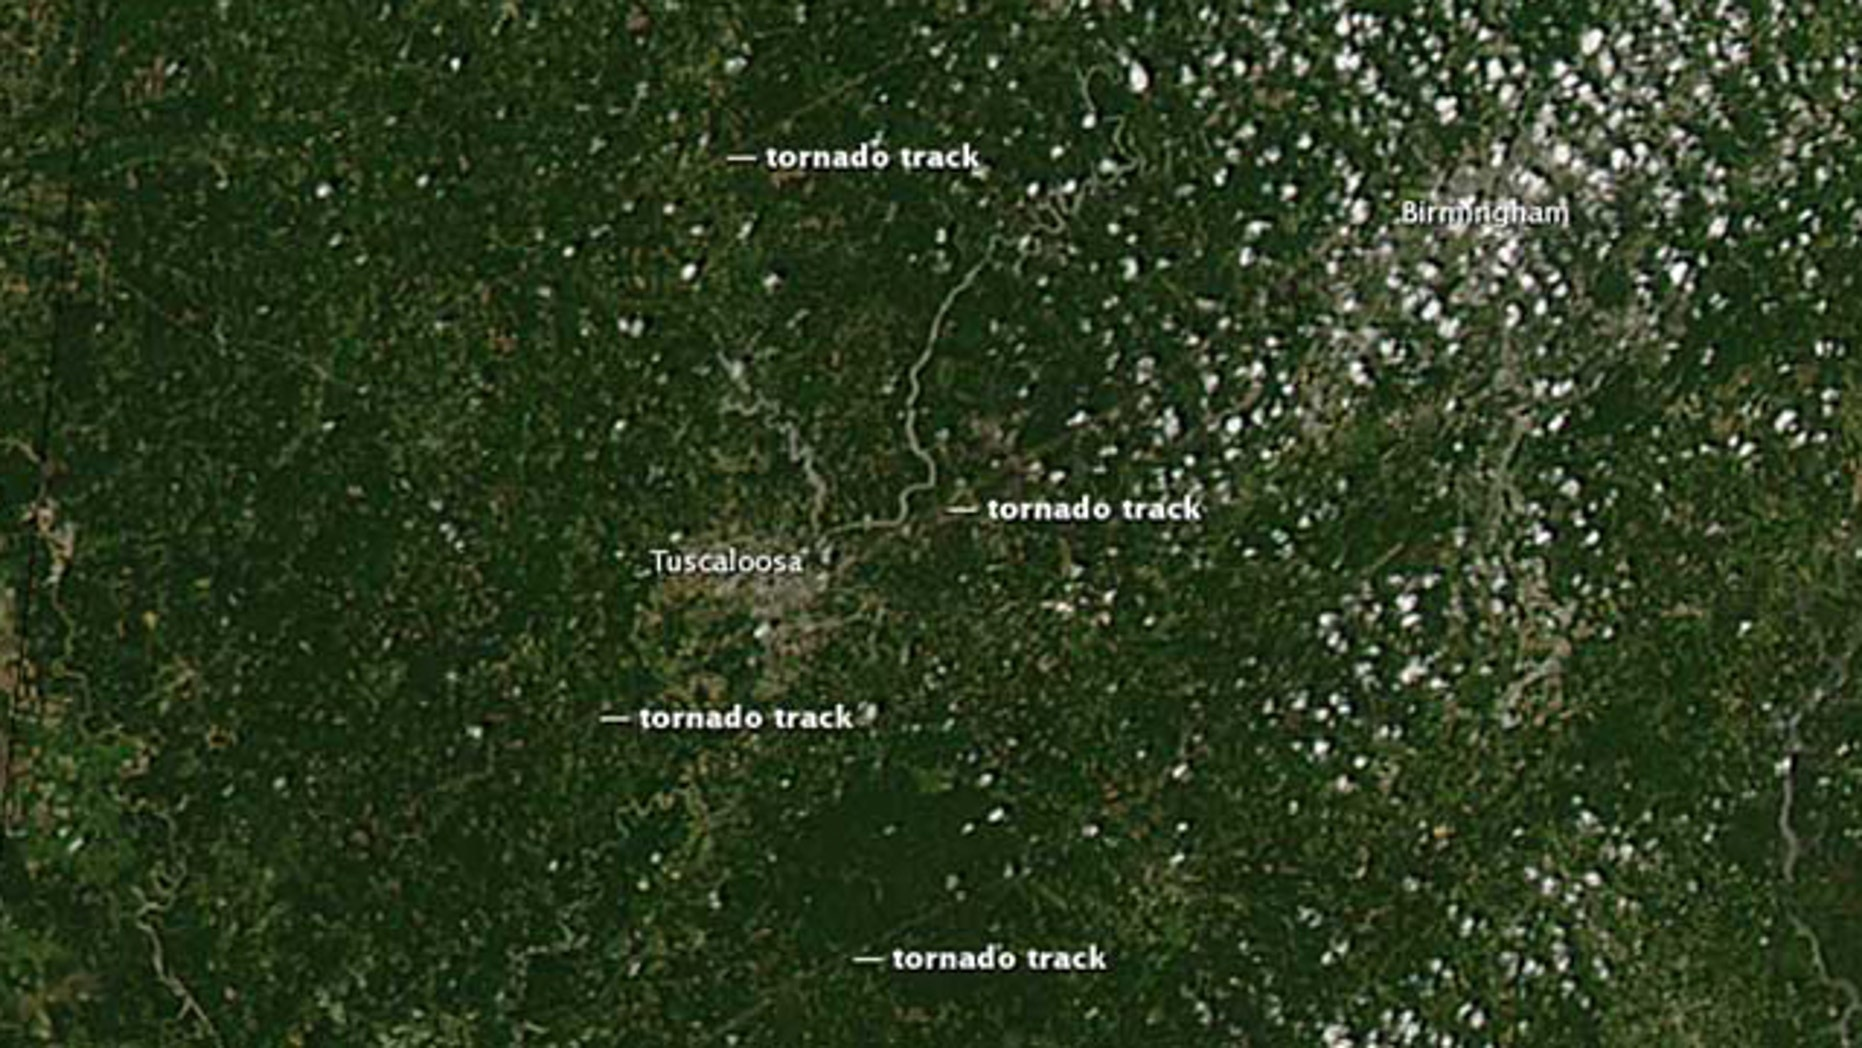 Tuscaloosa, Ala., was hit by three separate tornados last week, NASA images show